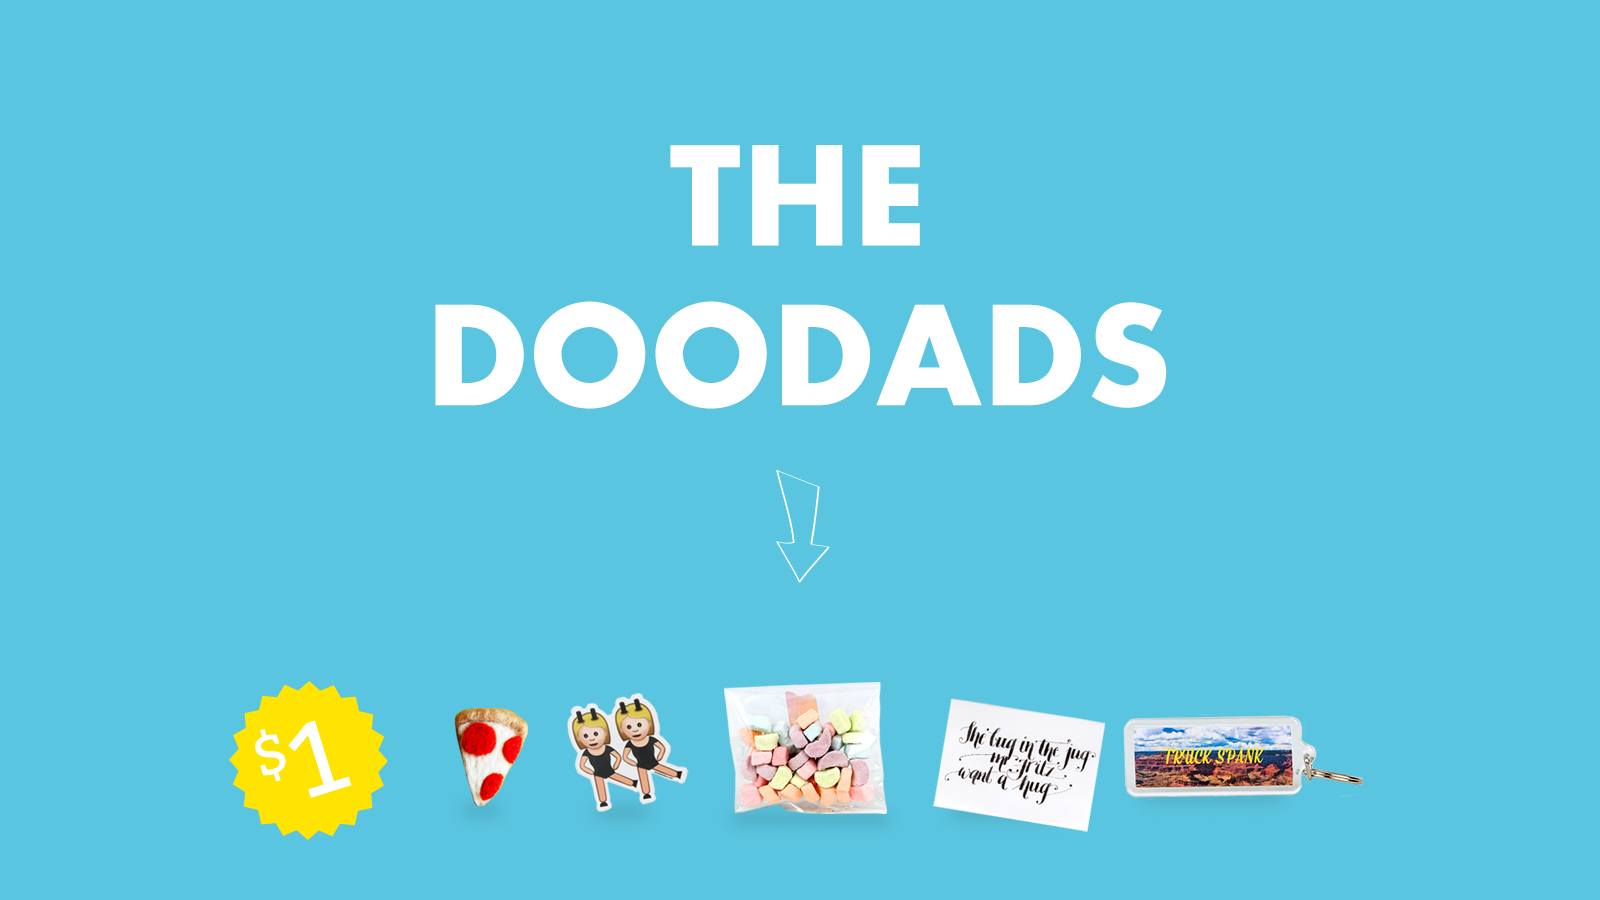 thedoodads